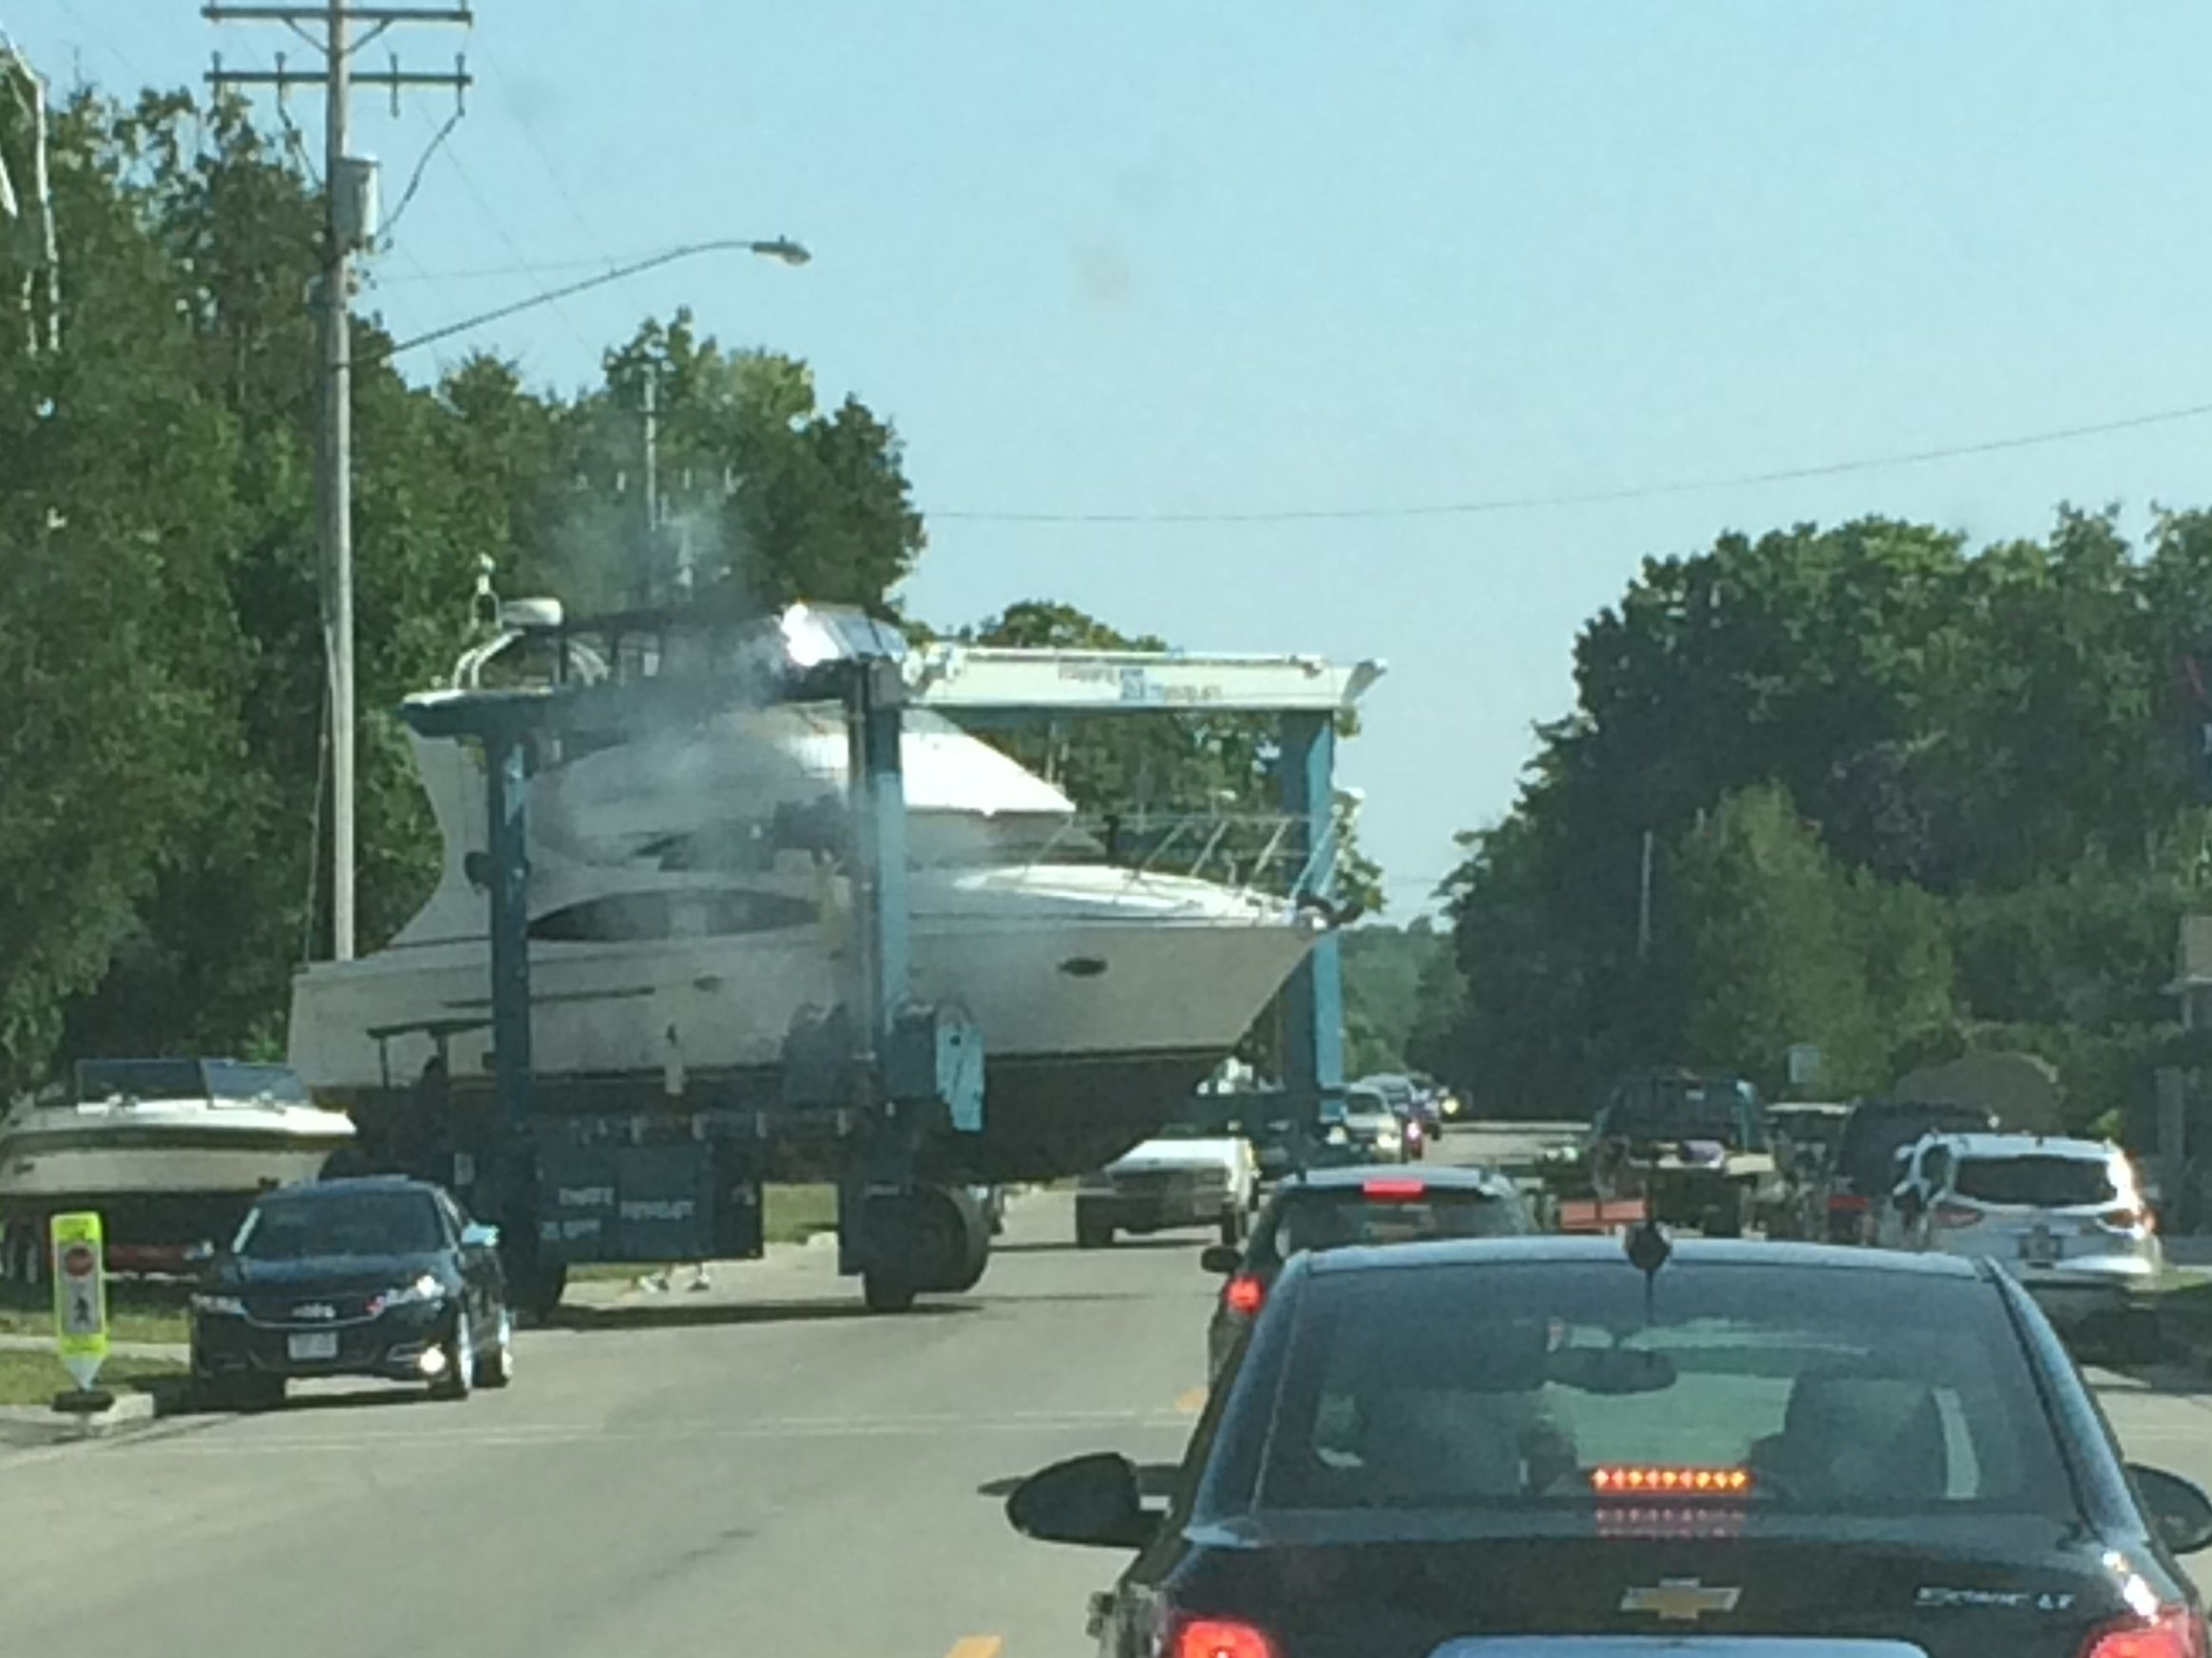 Why did the big boat cross the road?